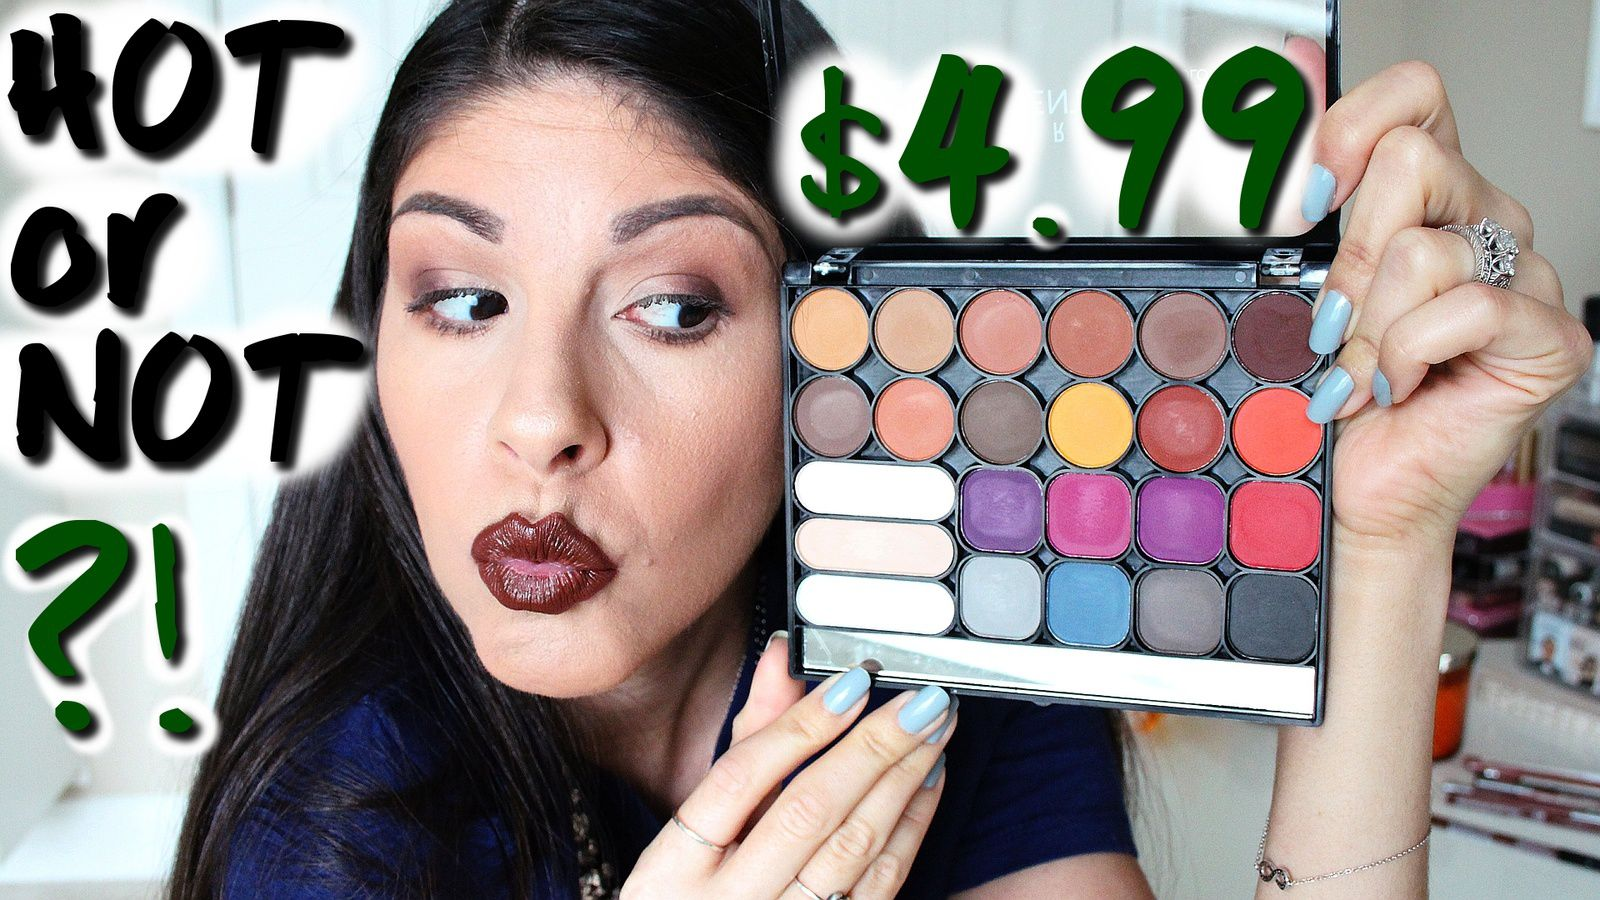 HOT or NOT $4.99 Eyeshadow Palette?!